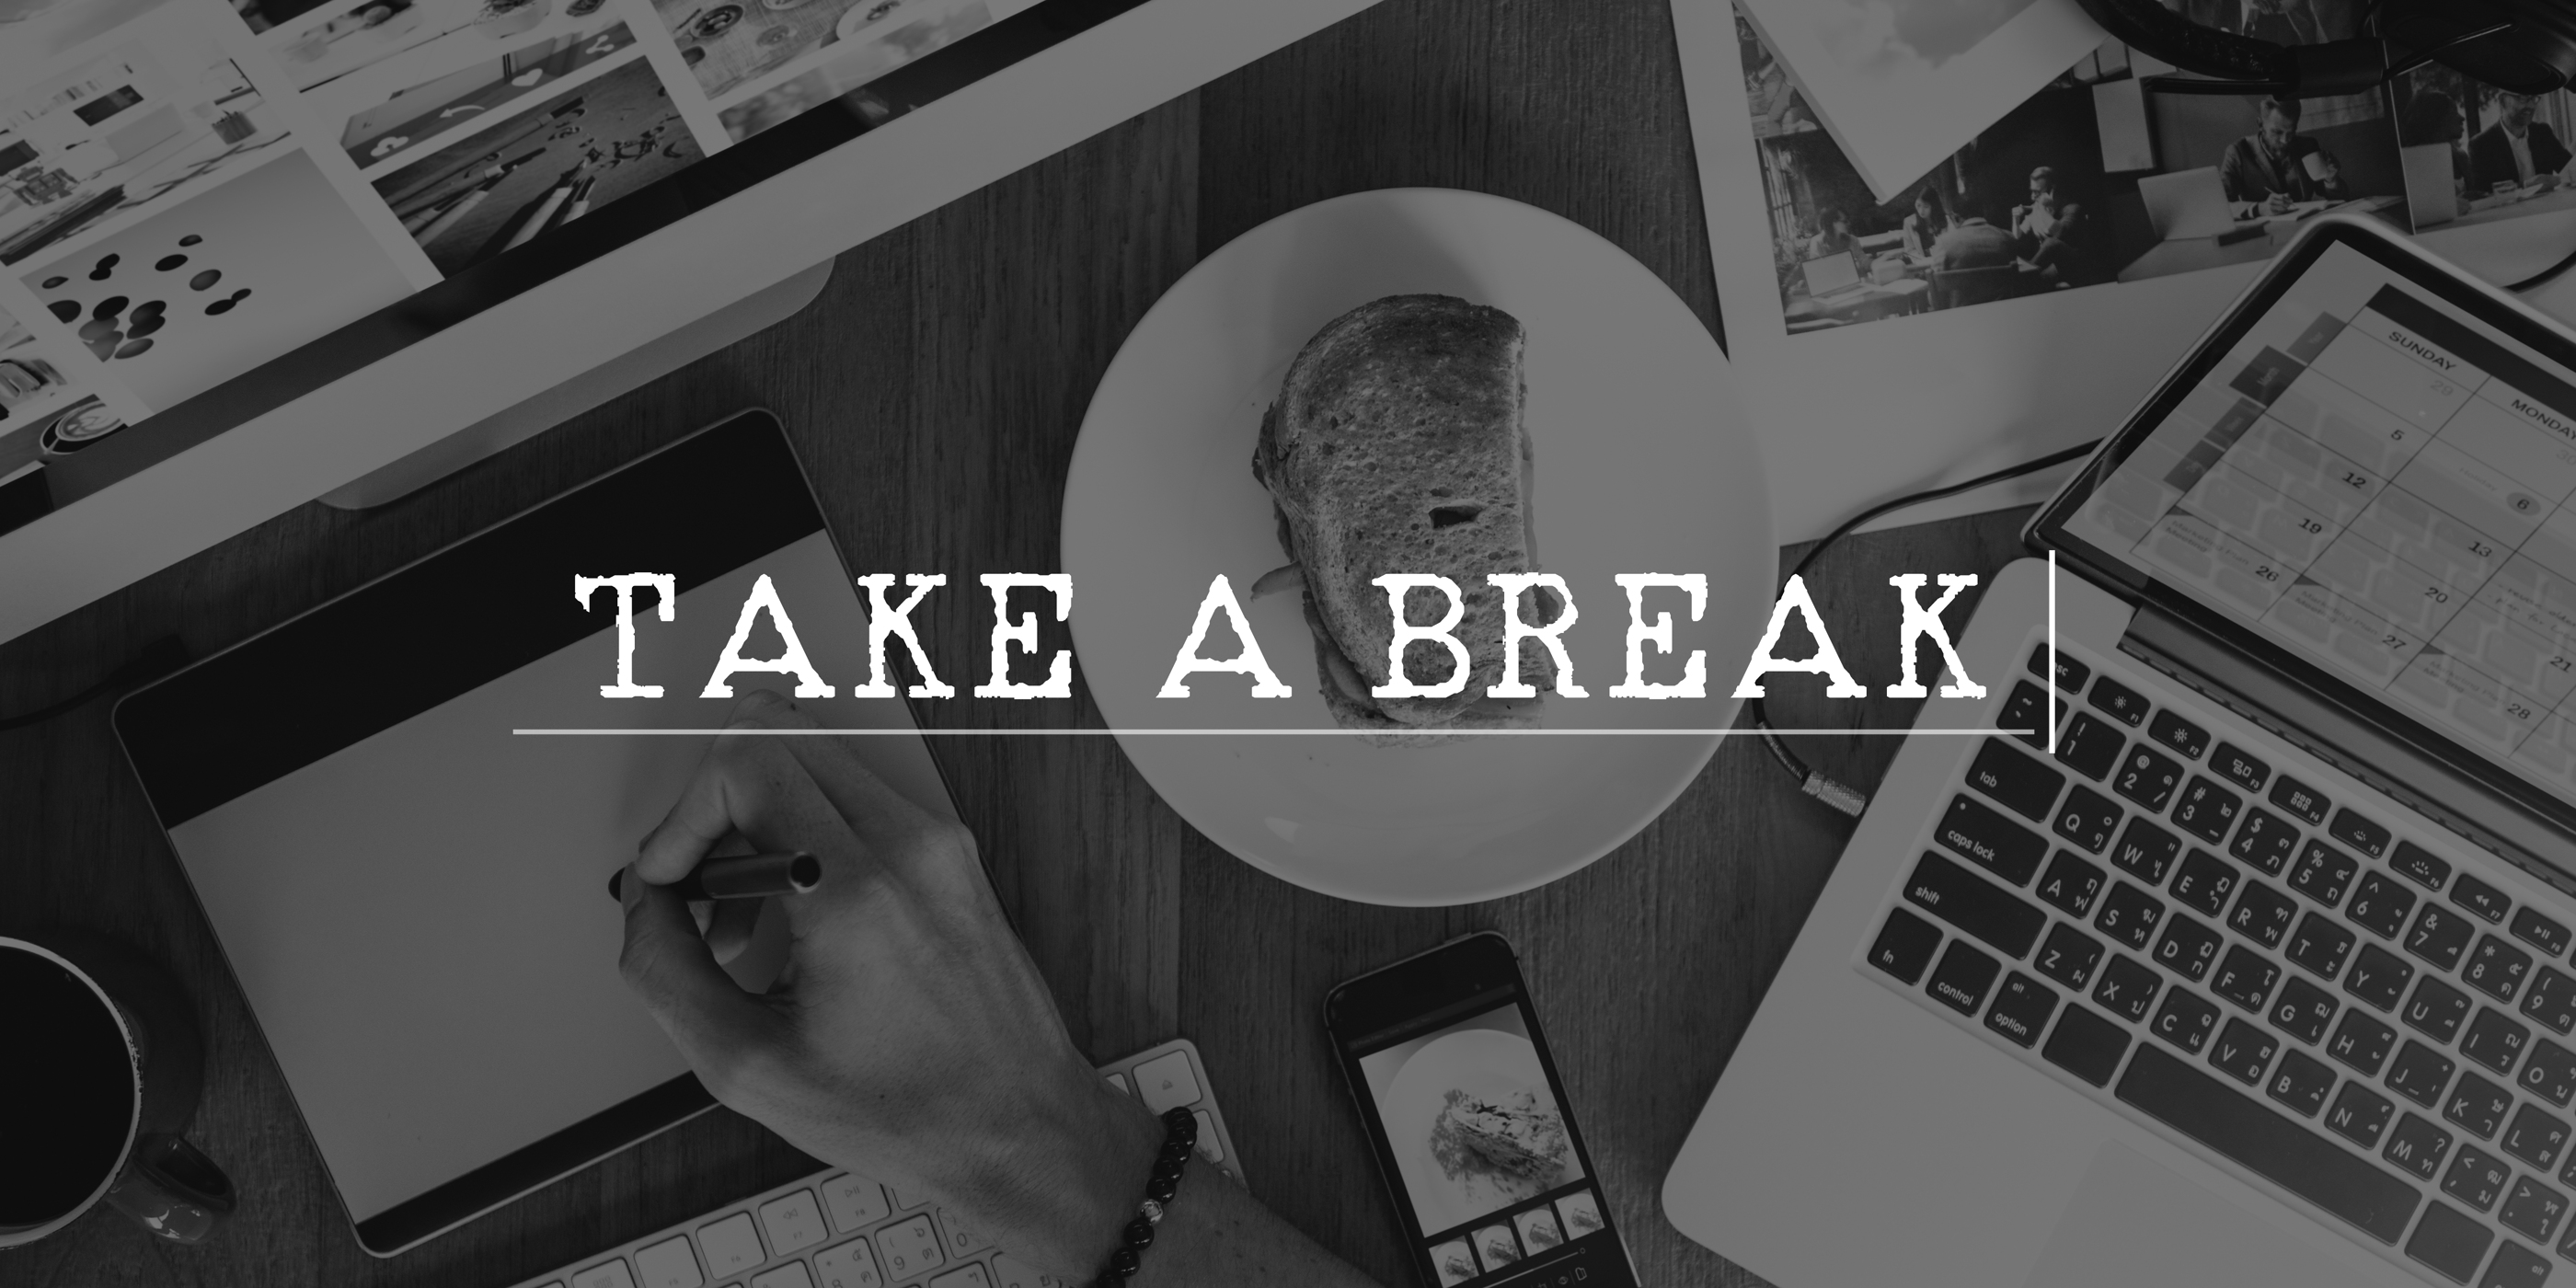 improve your work ethic by taking a break affordable professional